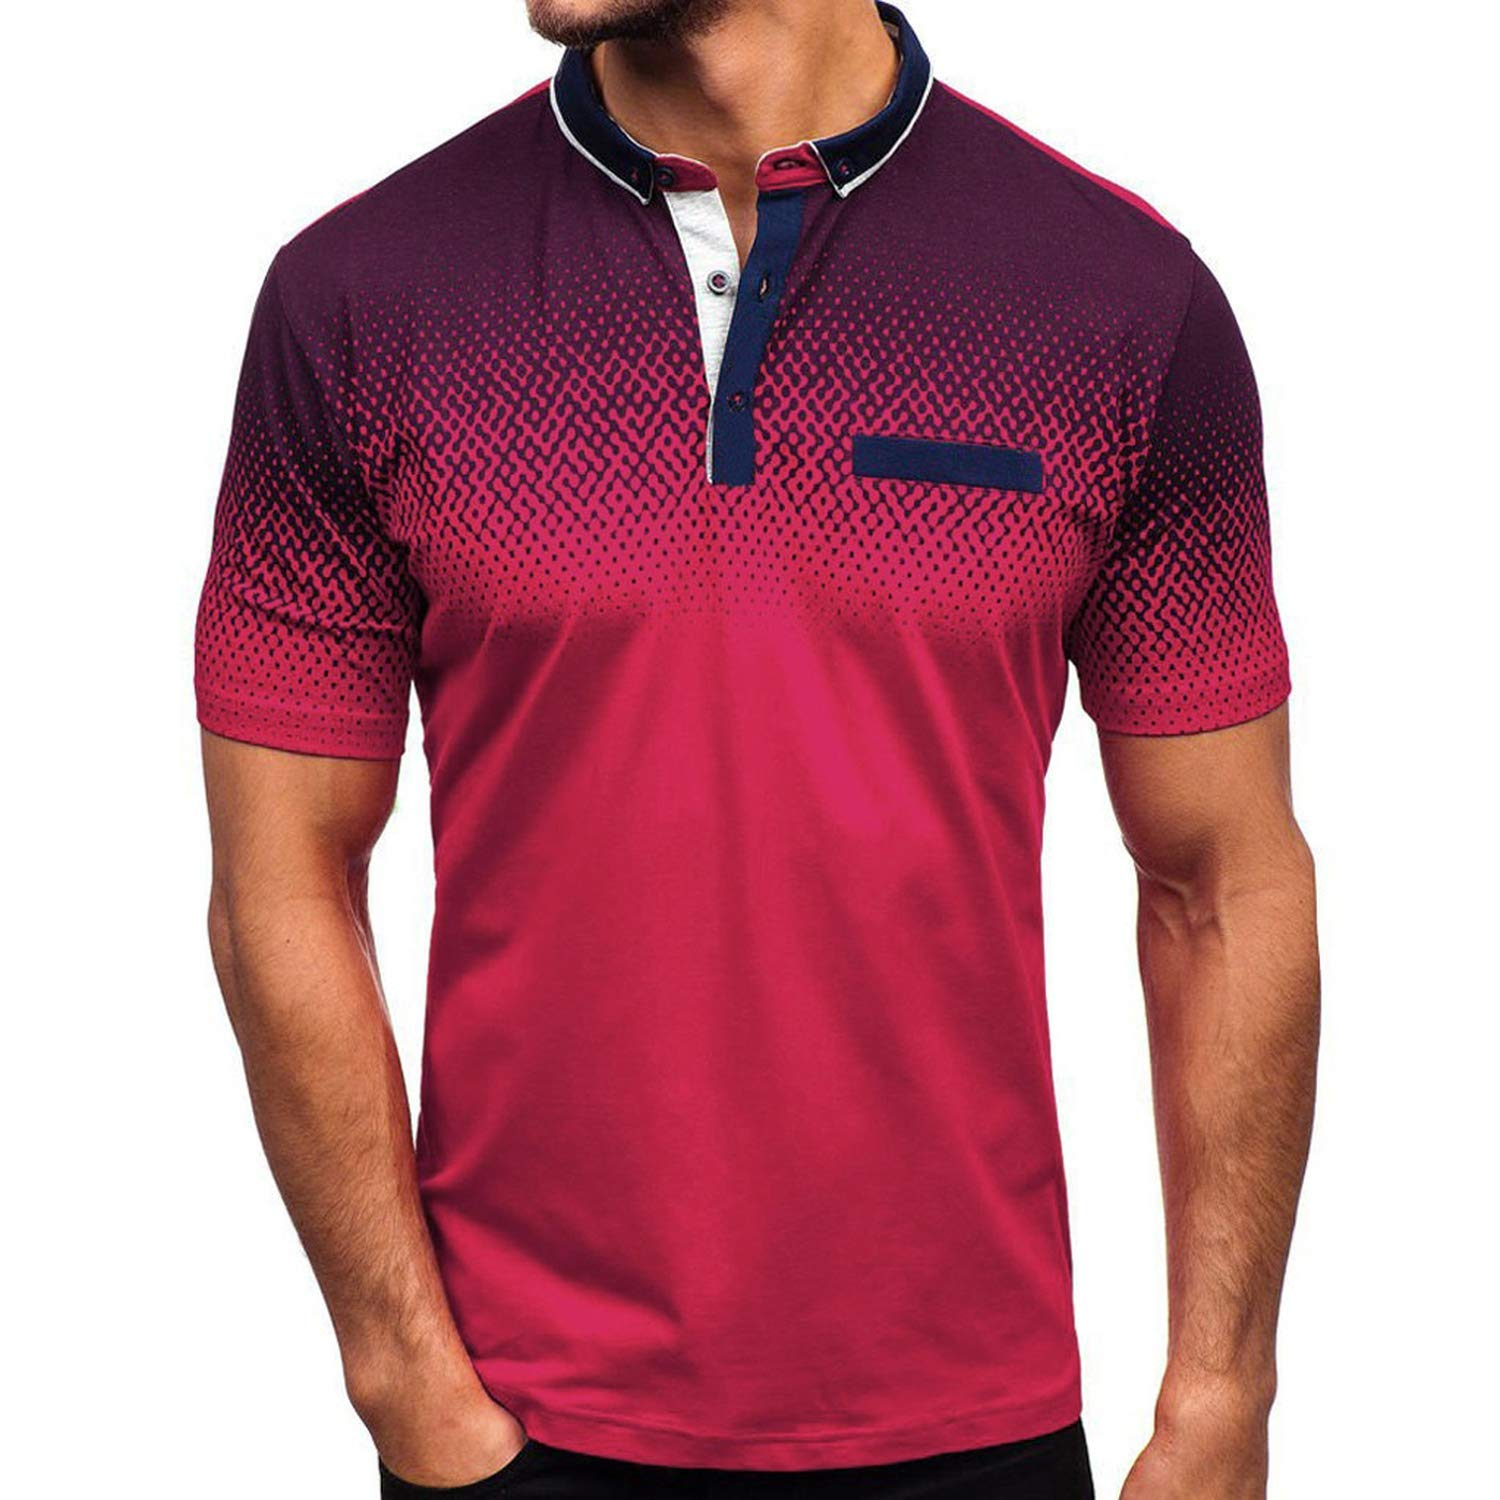 EspTmall 2019 Men Polo Shirts Blue and White Gradient England Style Men Shirt Summer Polo Casual Loose Turn-Down Collar Mens Clothing Red L China